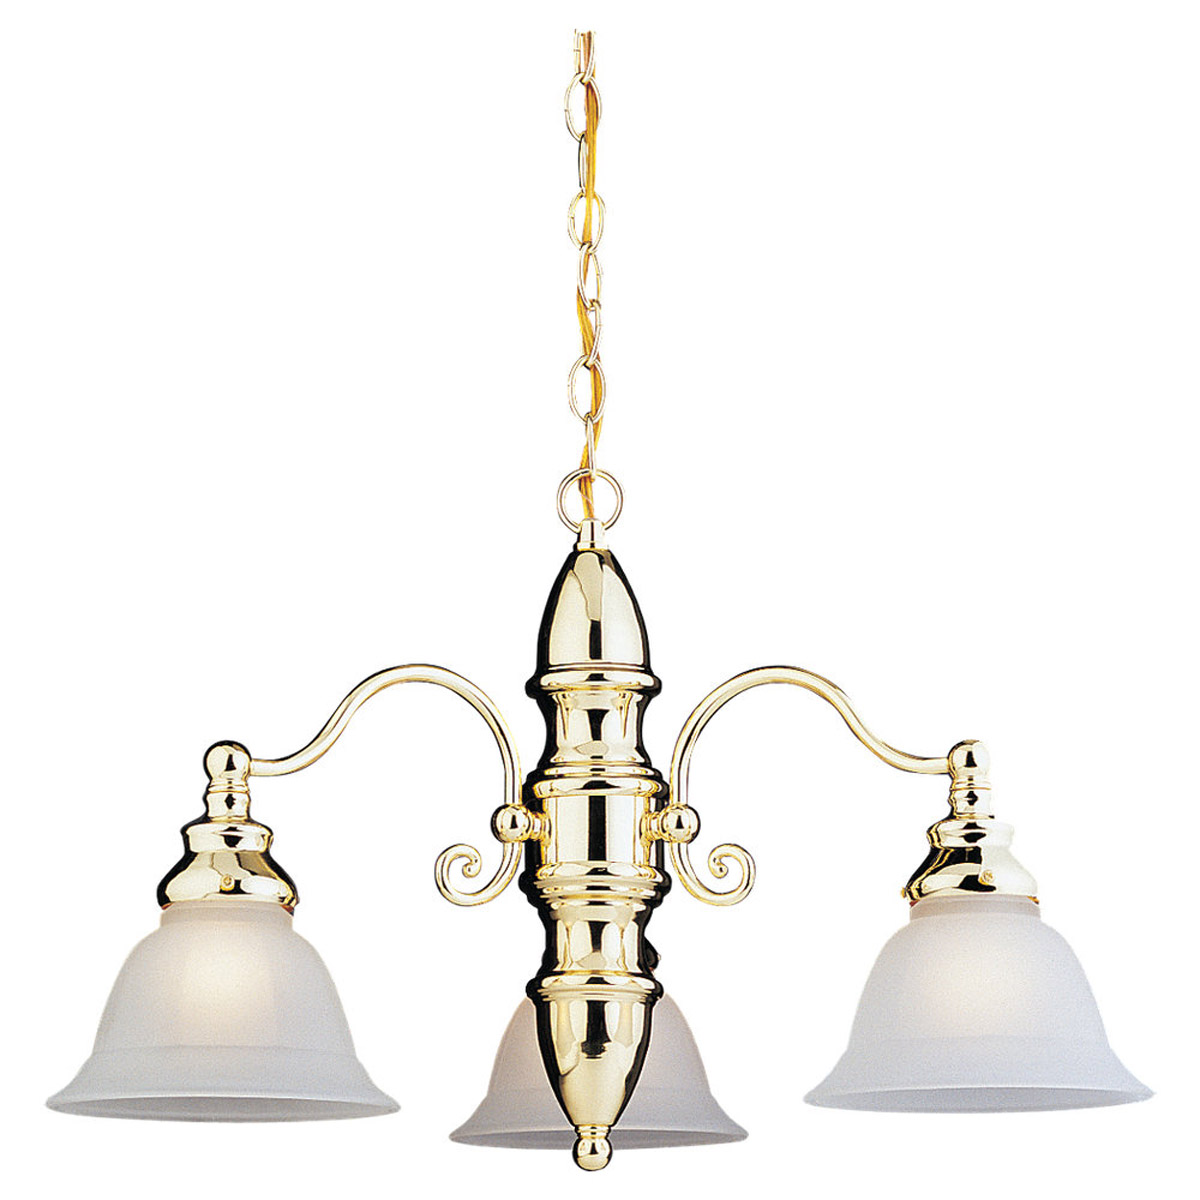 Sea Gull Lighting Canterbury 3 Light Chandelier in Polished Brass 31050-02